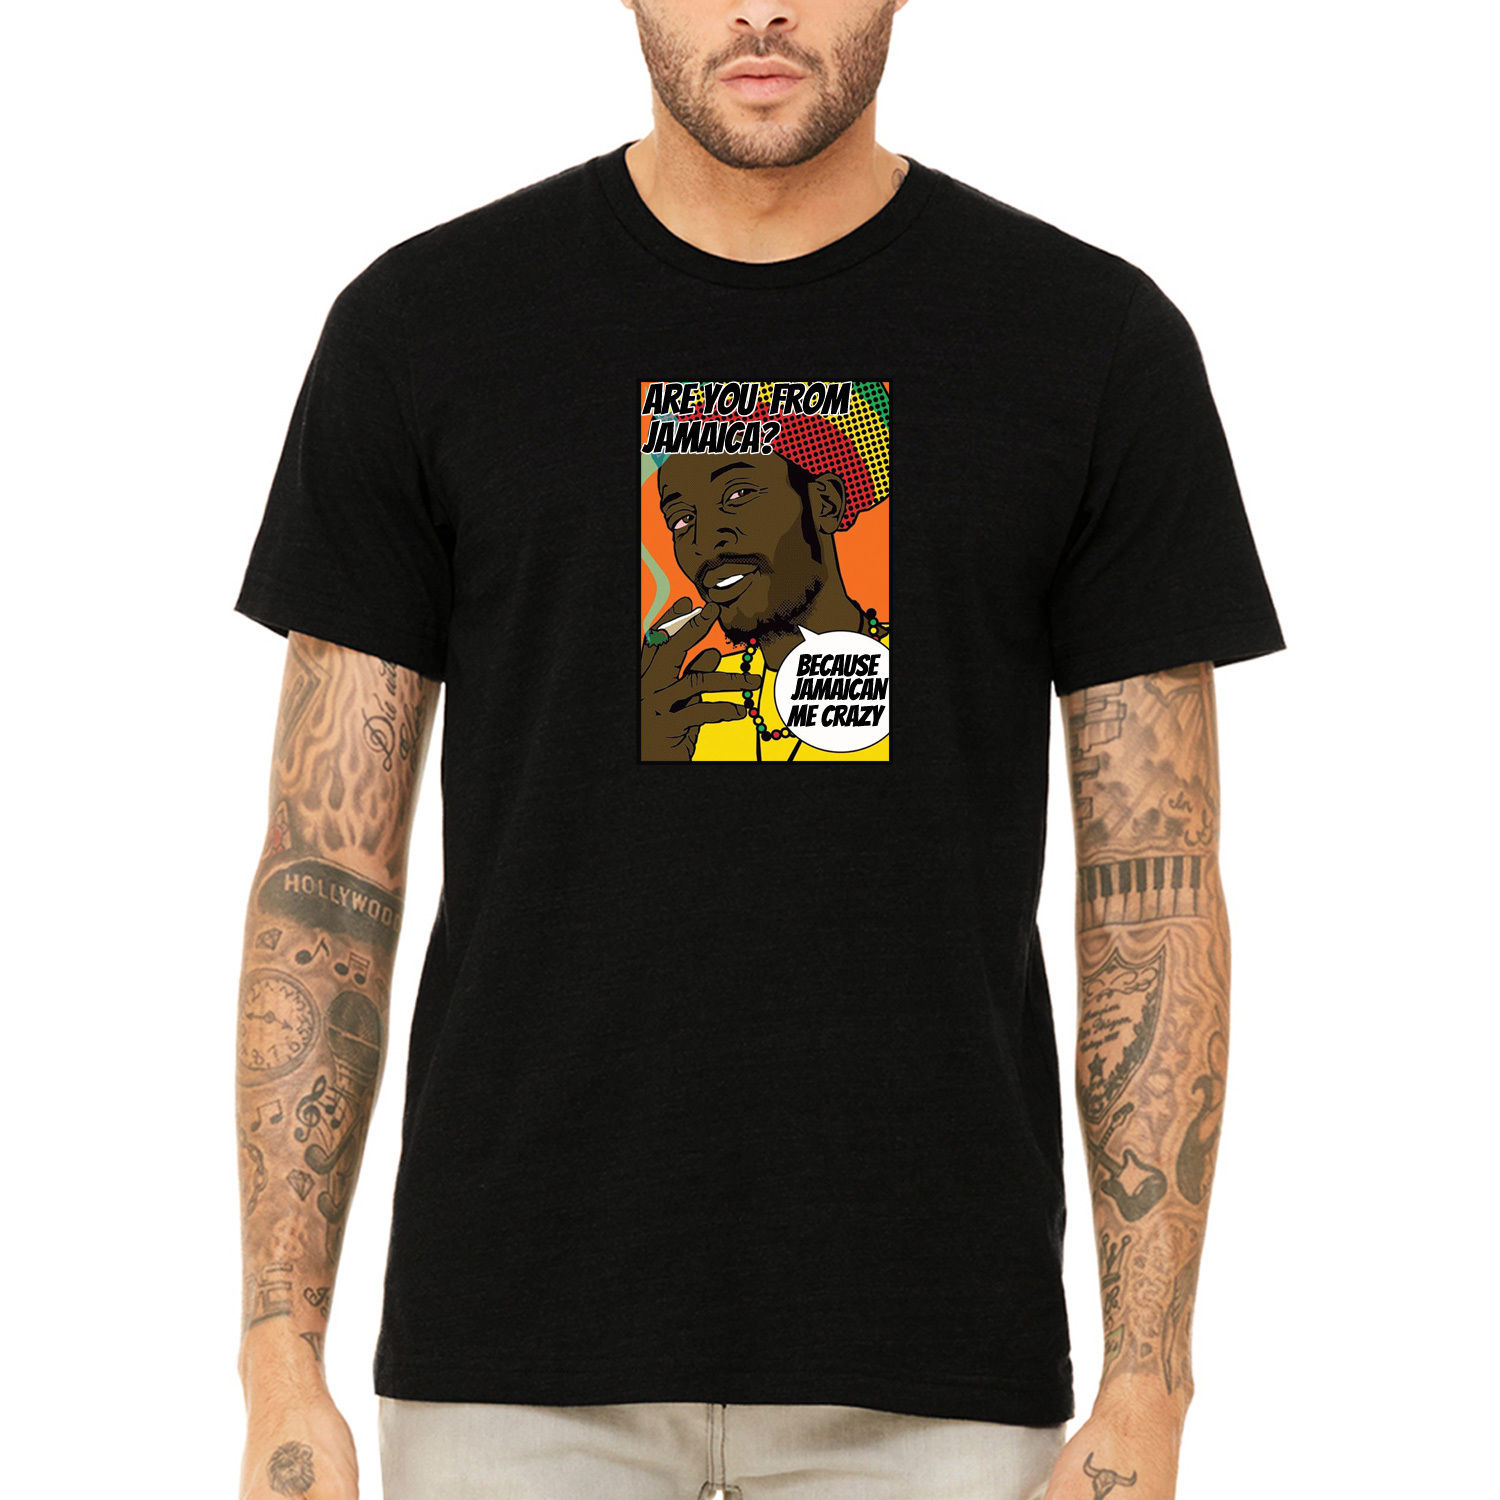 Gildan Misky & Stone Are You From Jamaica? Funny Pick Up Line Tee